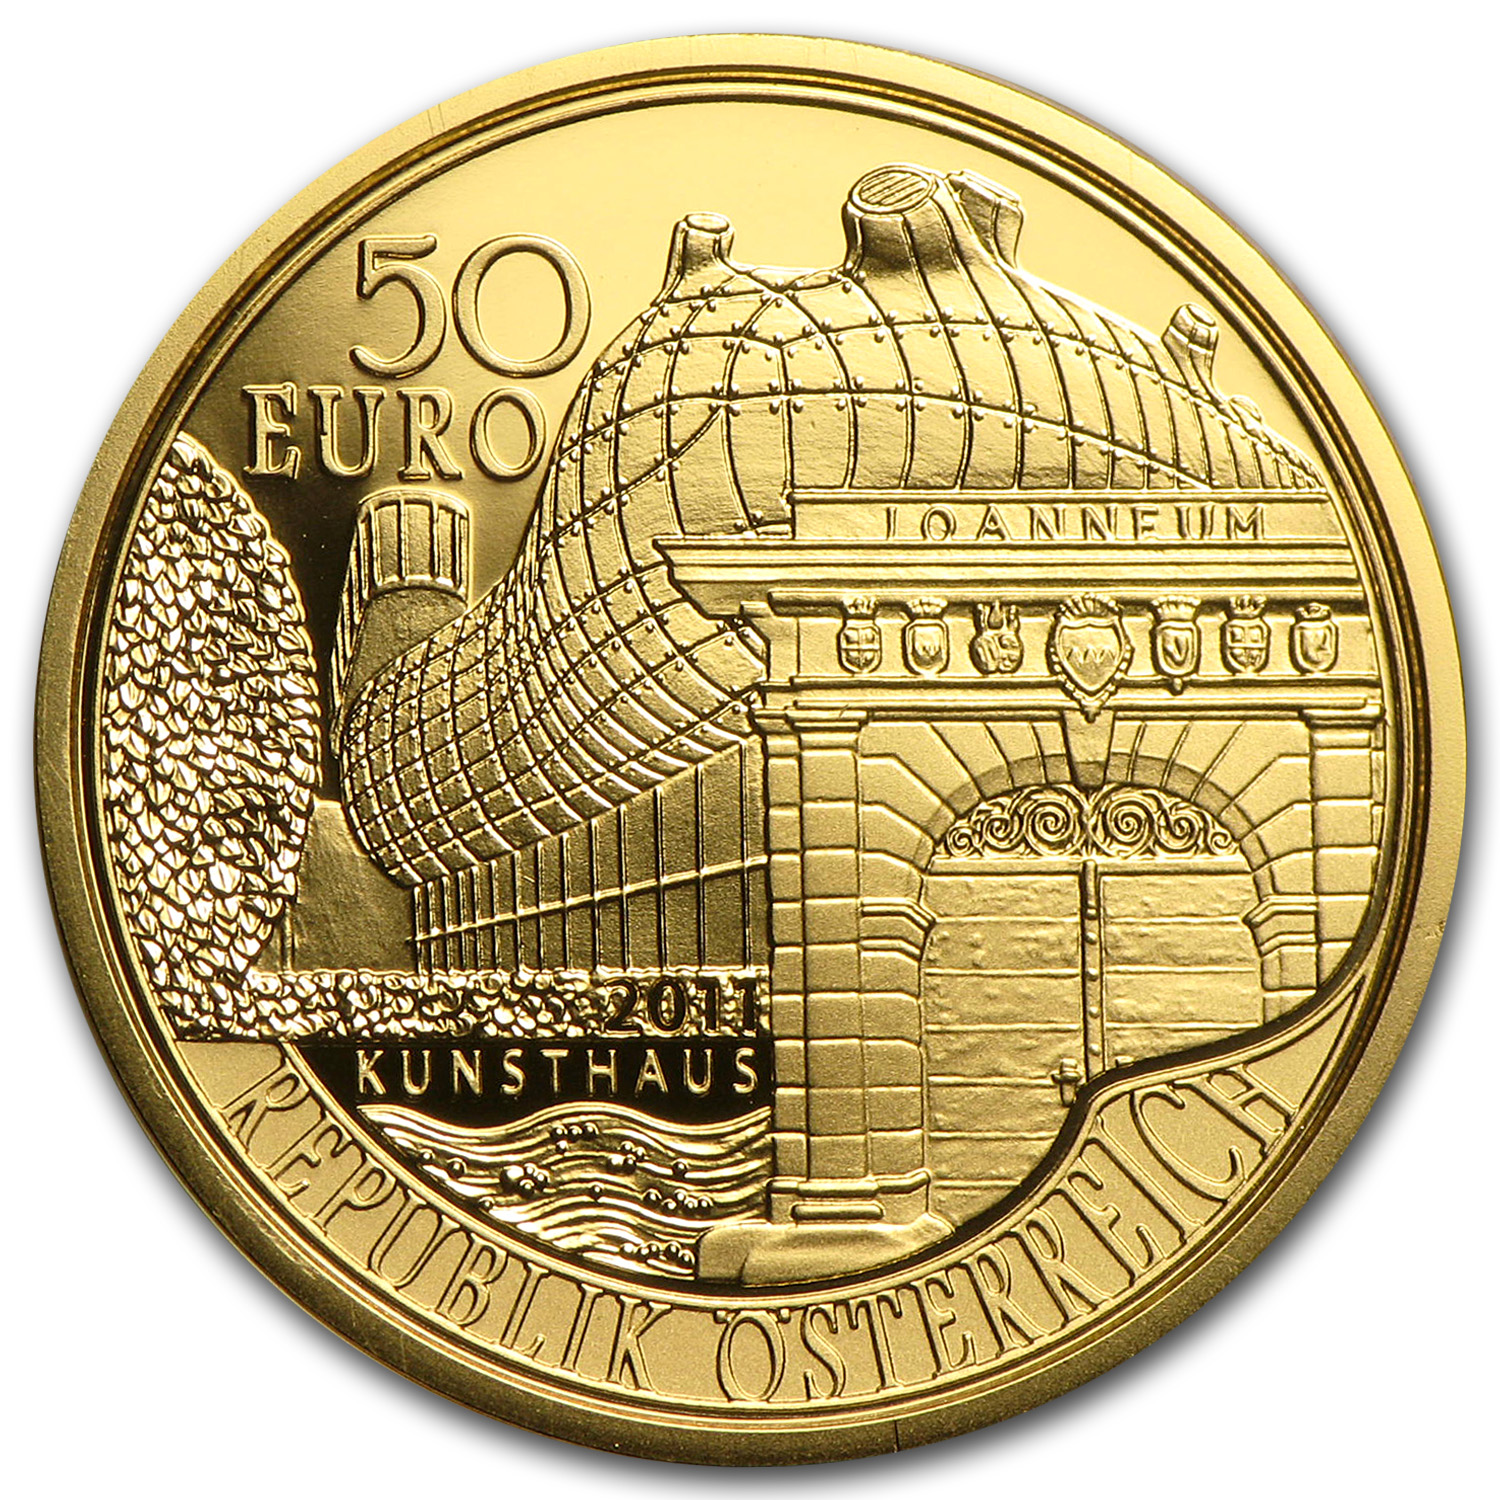 2011 The Bicentenary of the Joanneum at Graz 50 Euro - Proof